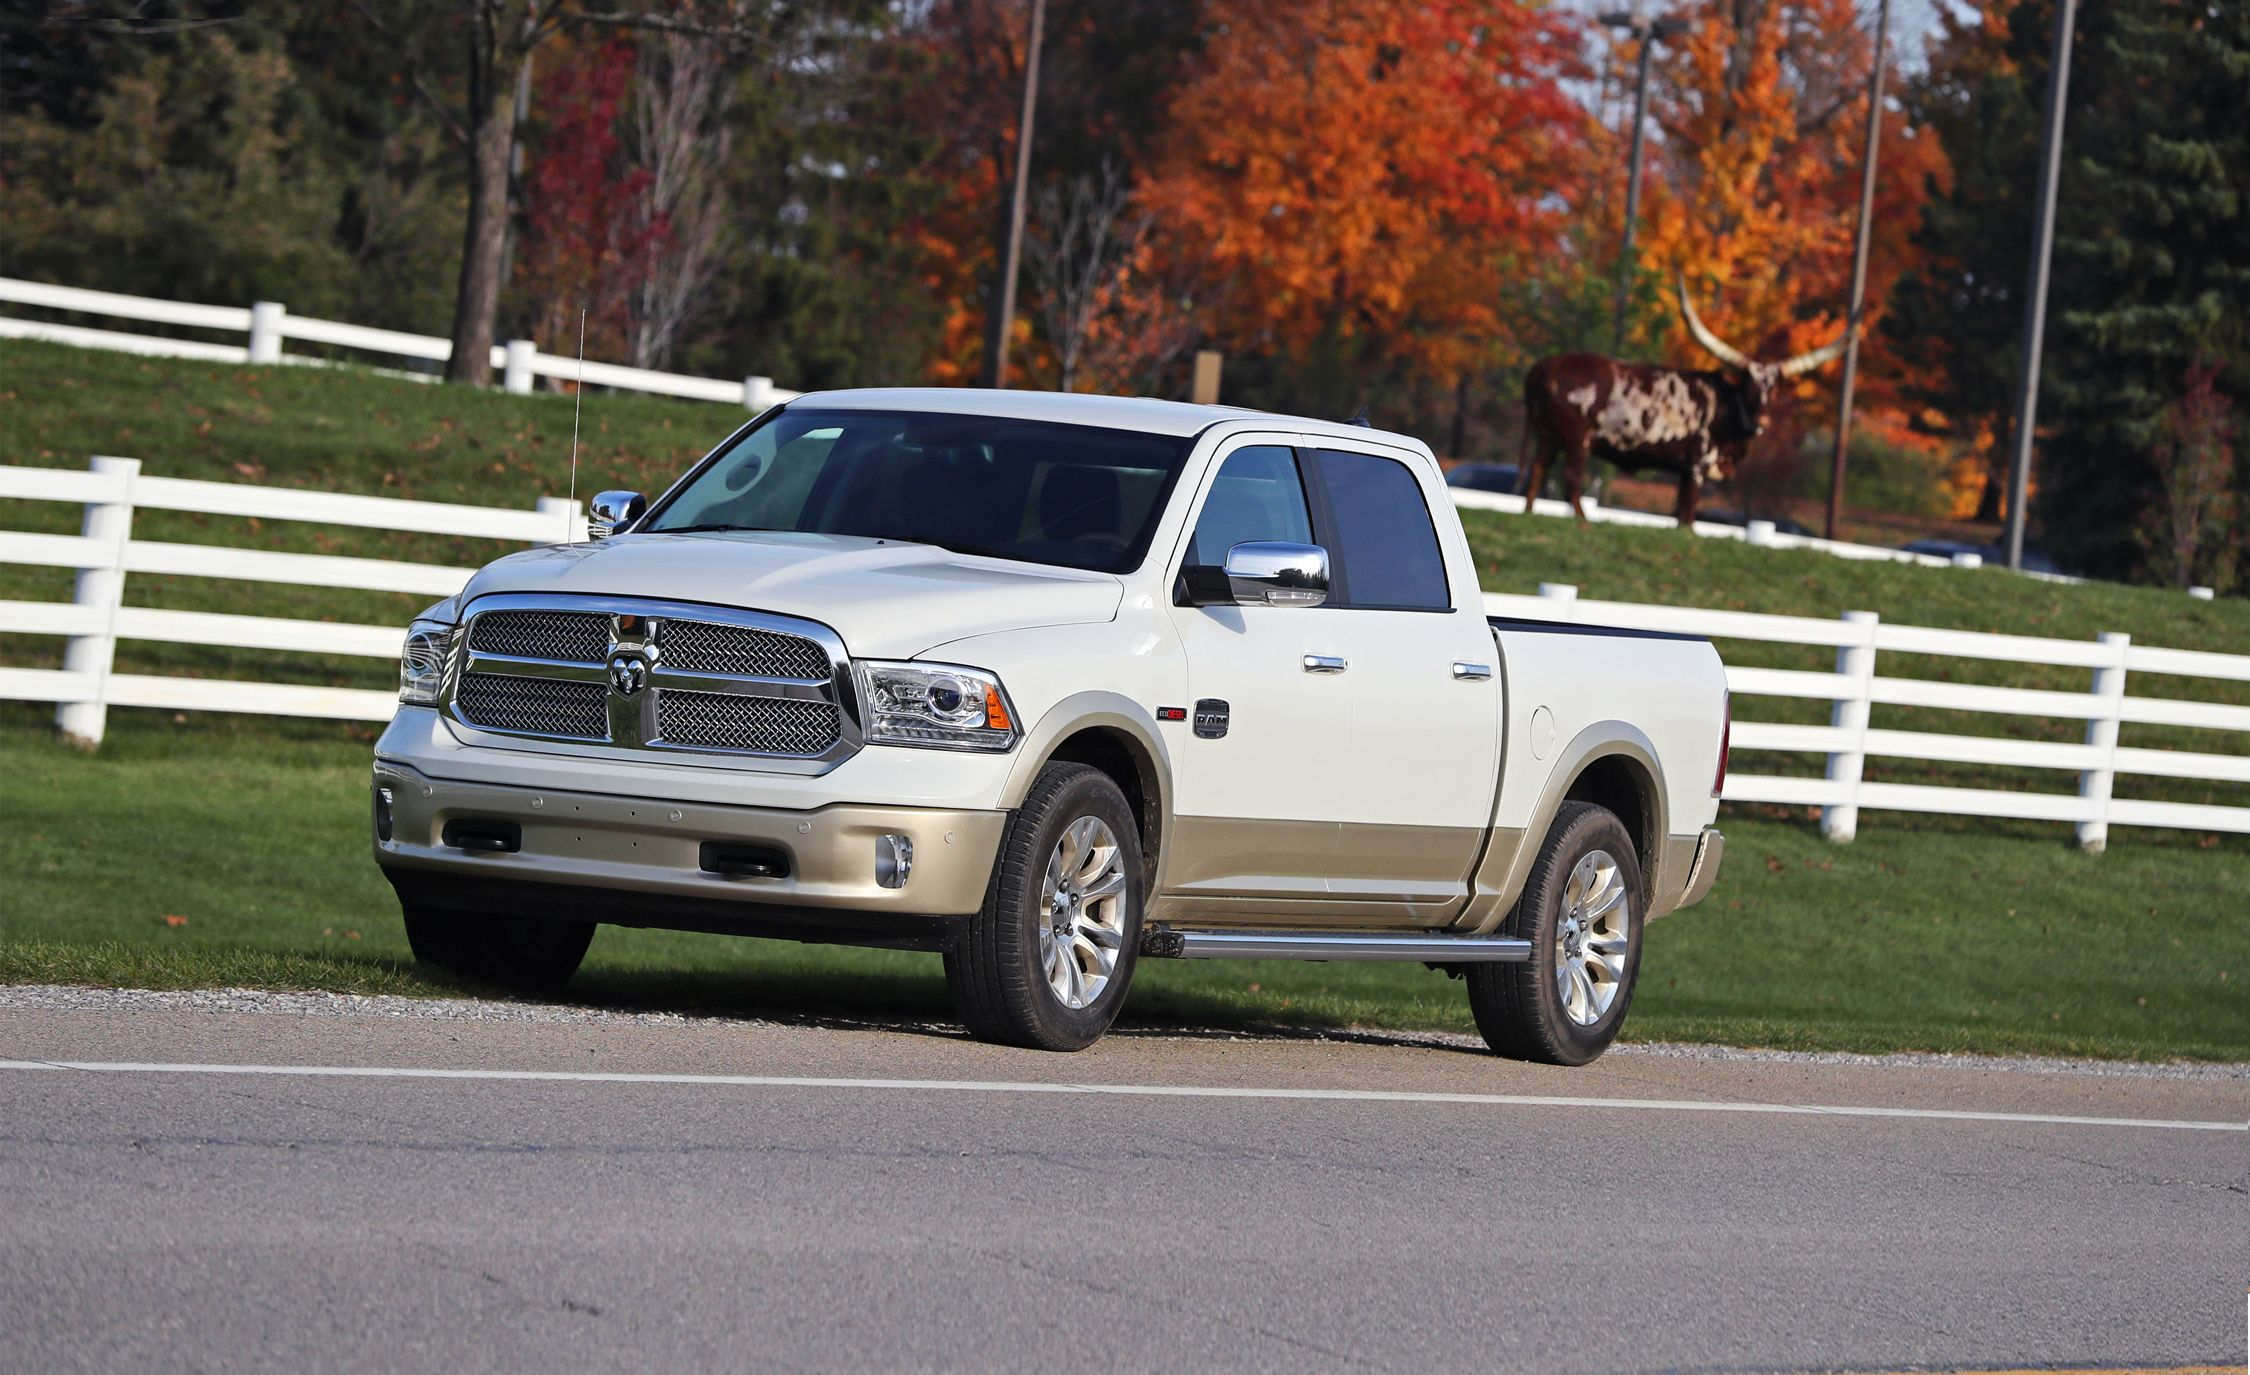 2017 ram 1500 in depth model review car and driver. Black Bedroom Furniture Sets. Home Design Ideas